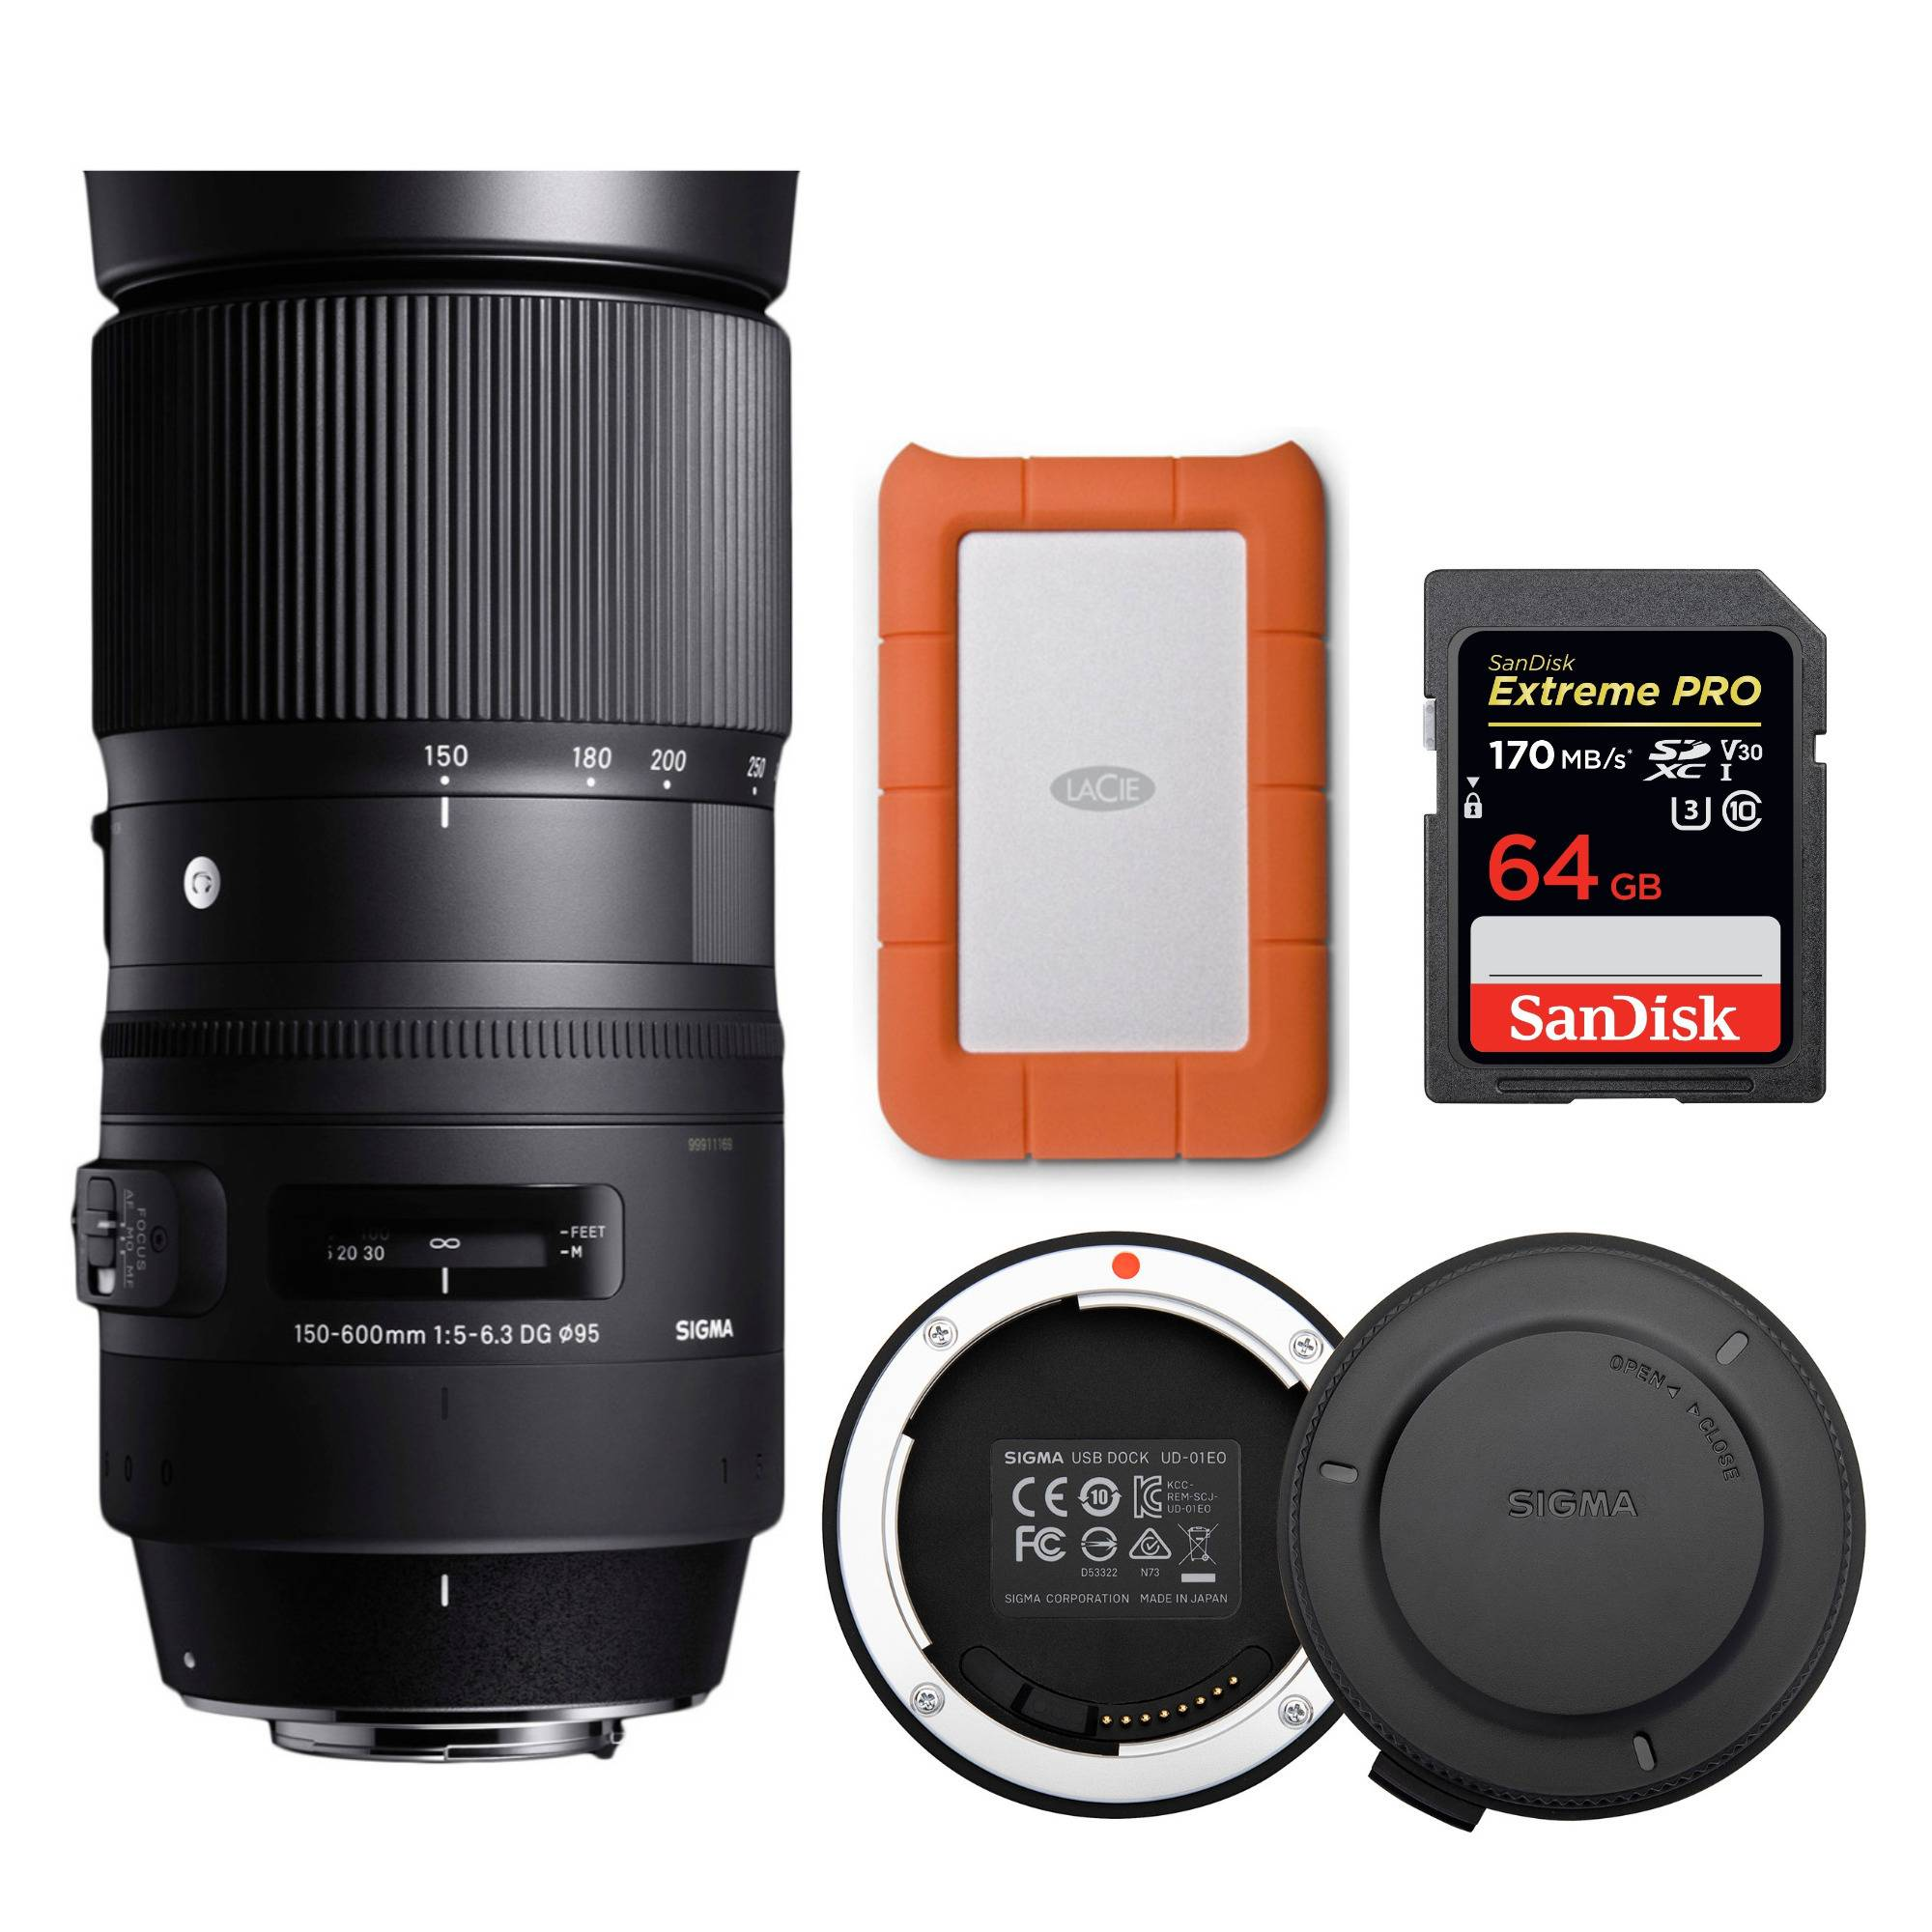 Sigma 150-600mm f/5-6.3 DG OS HSM Contemporary Lens for Nikon with Mini 1TBExternal Hard Drive and Accessory Bundle